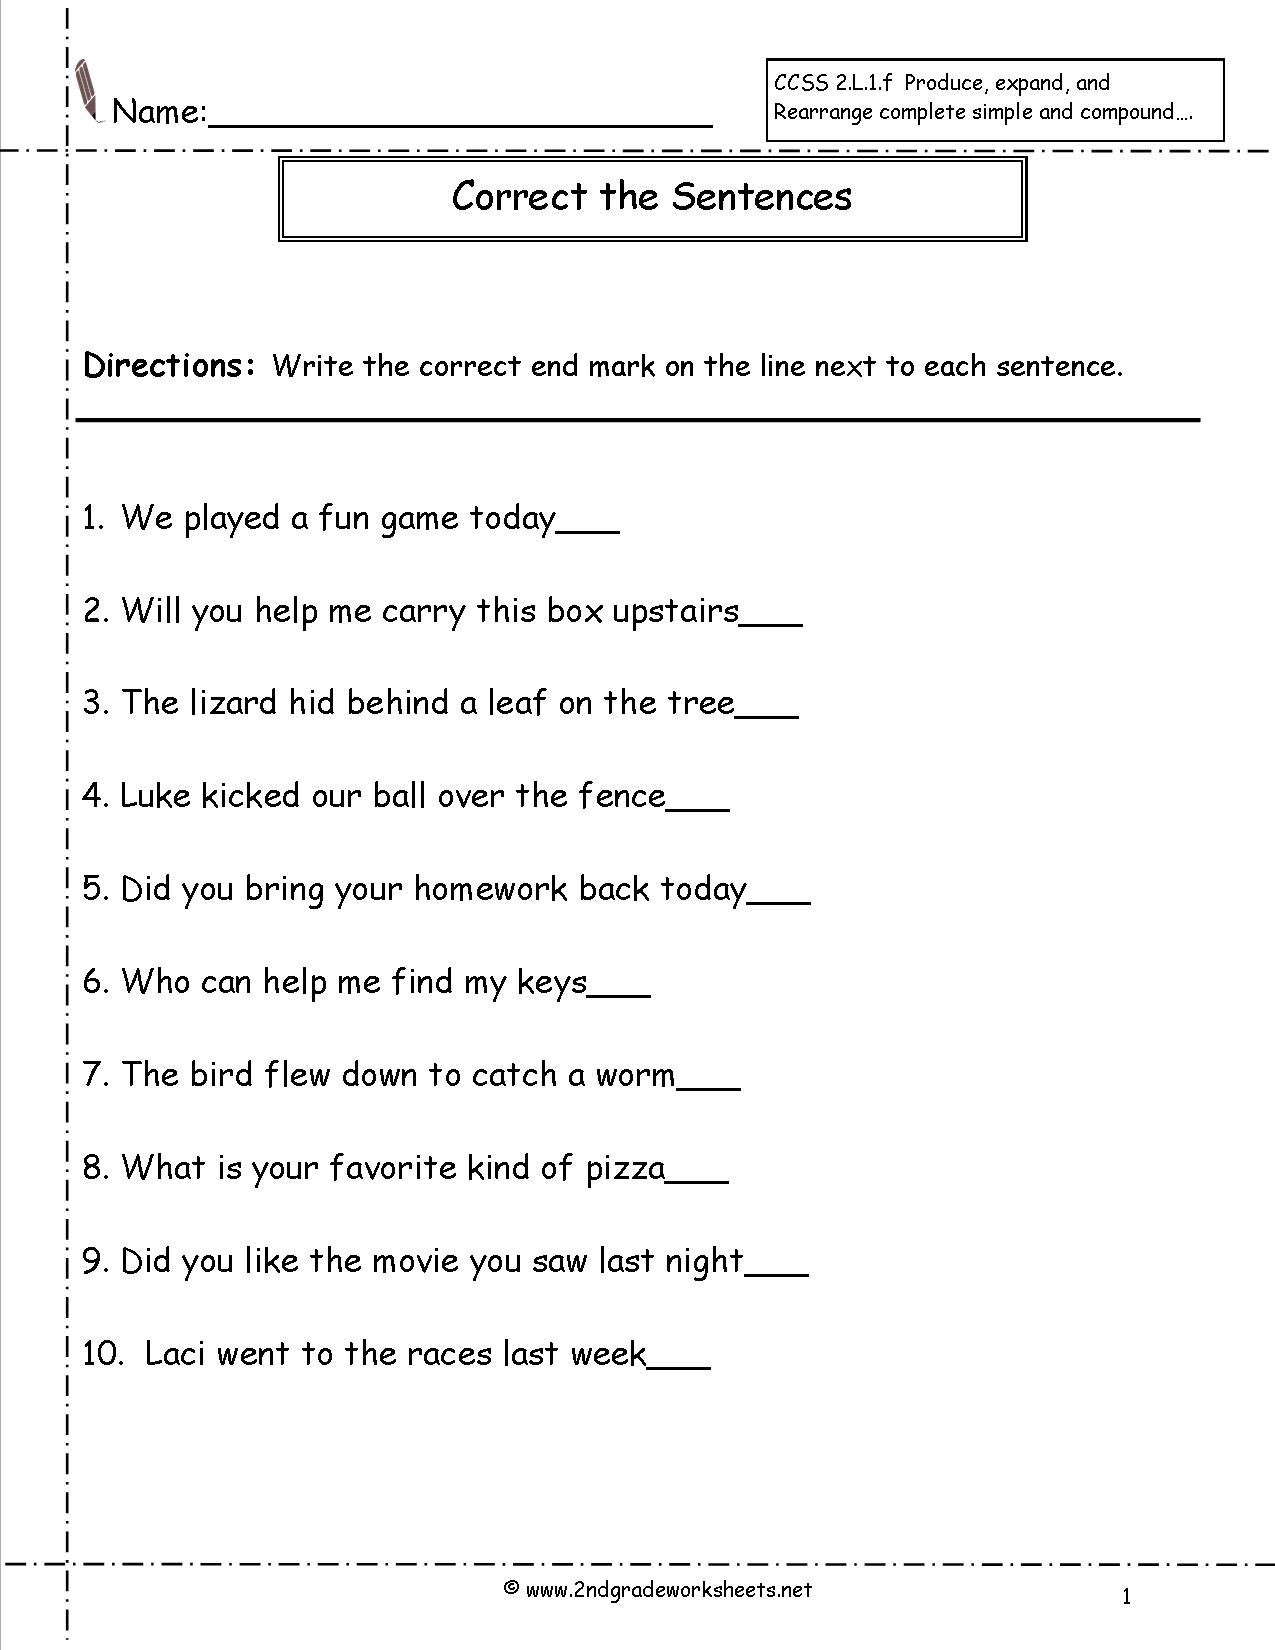 15 Best Images Of Weight Loss Printable Worksheets